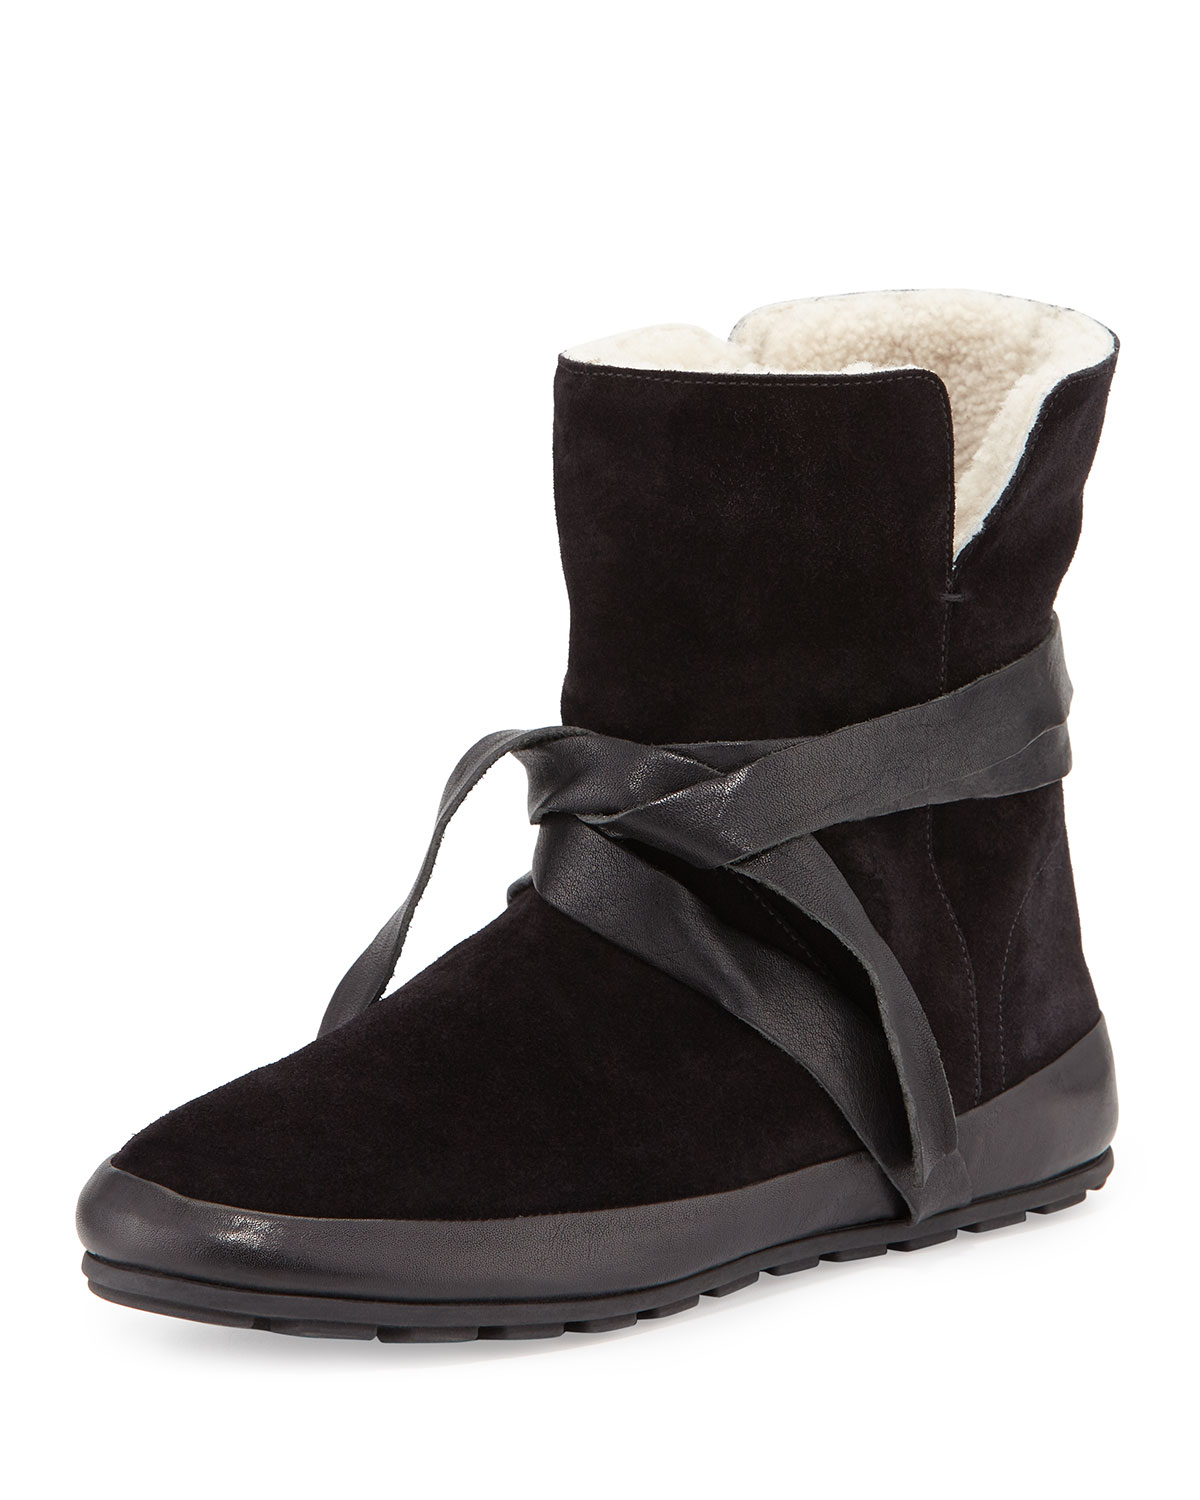 Isabel Marant Nygel Shearling Fur-Lined Wrap-Around Bootie, Black